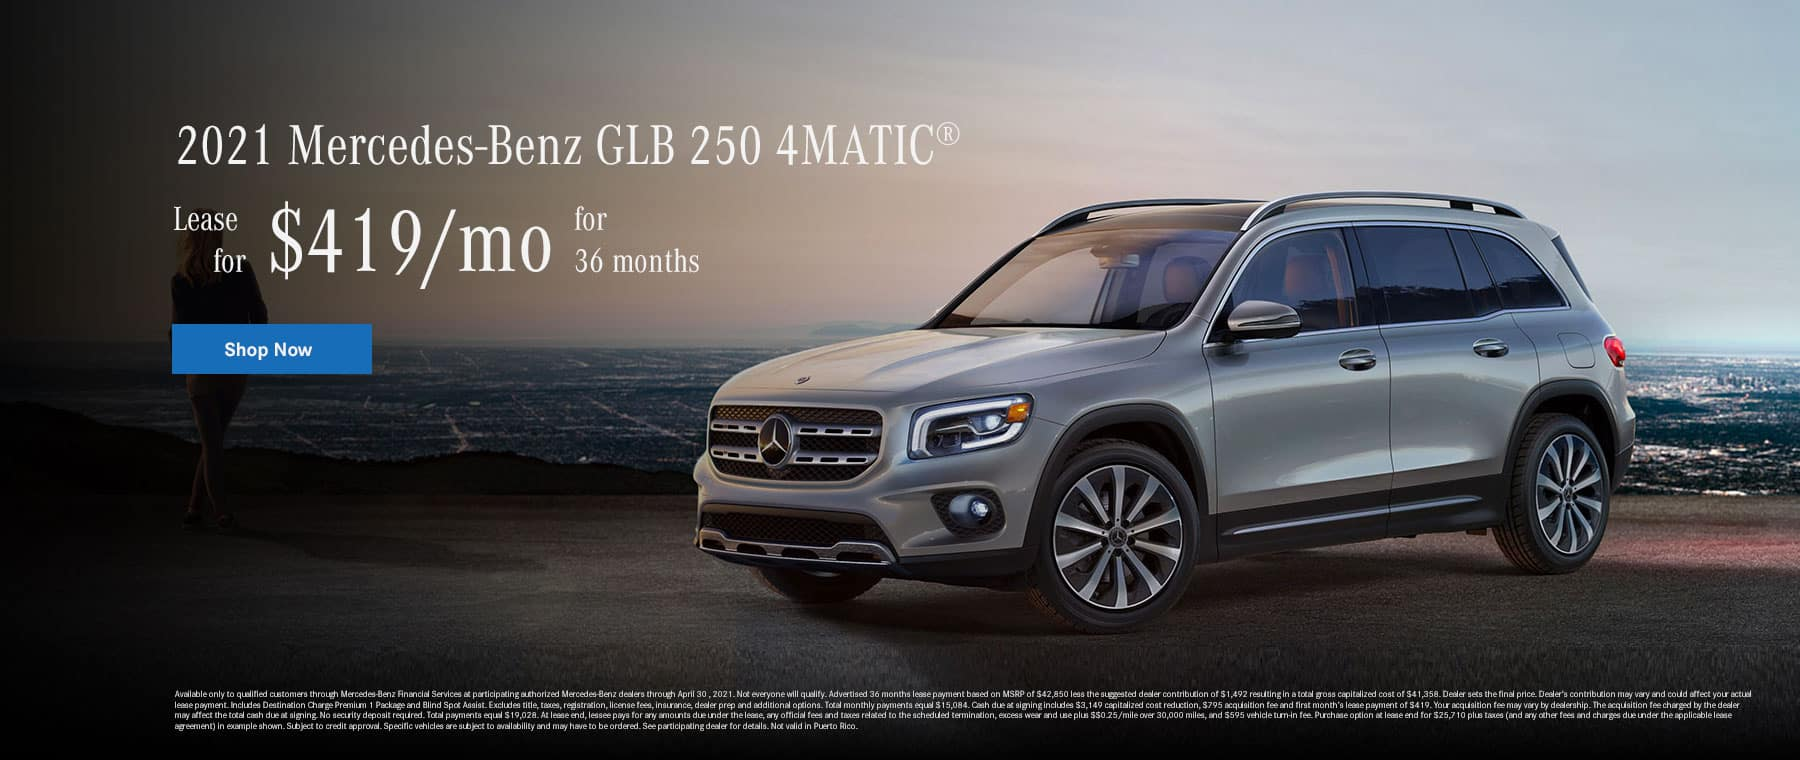 2021 Mercedes-Benz GLB 250 4MATIC - $419/mo for 36 months